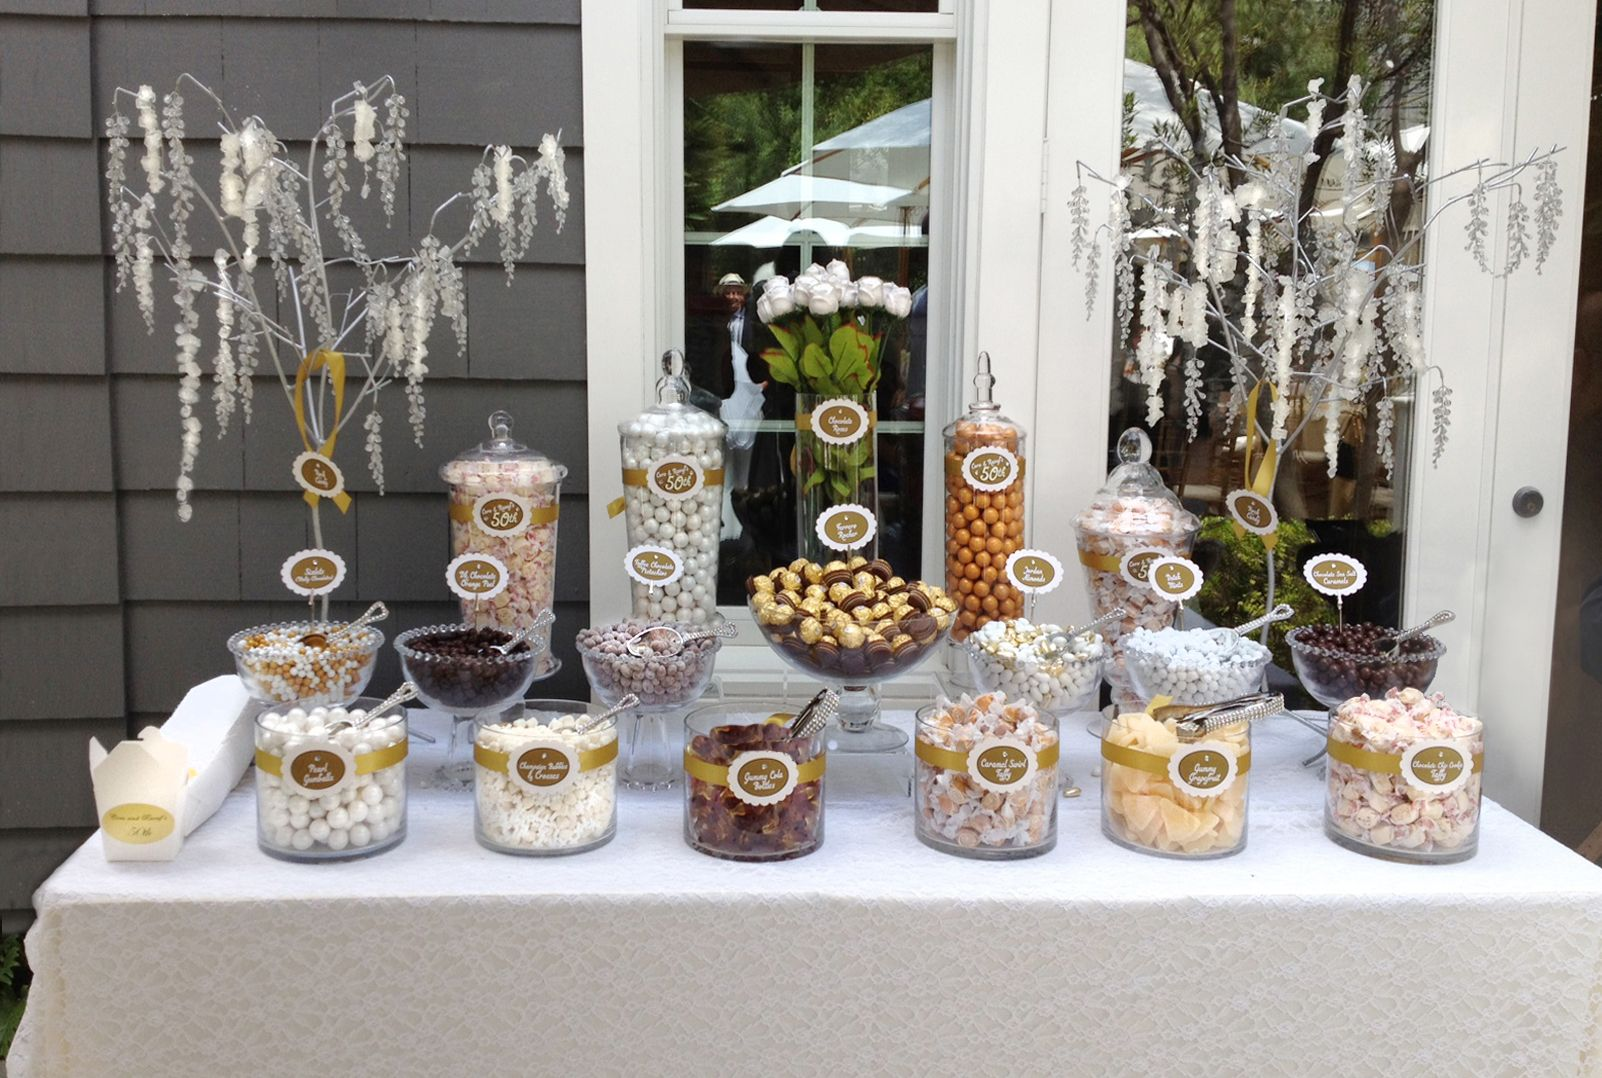 Pin By Katie Chappelle On Candy Buffets Quality 60th Wedding Anniversary Party Wedding Anniversary Party Wedding Anniversary Party Decorations